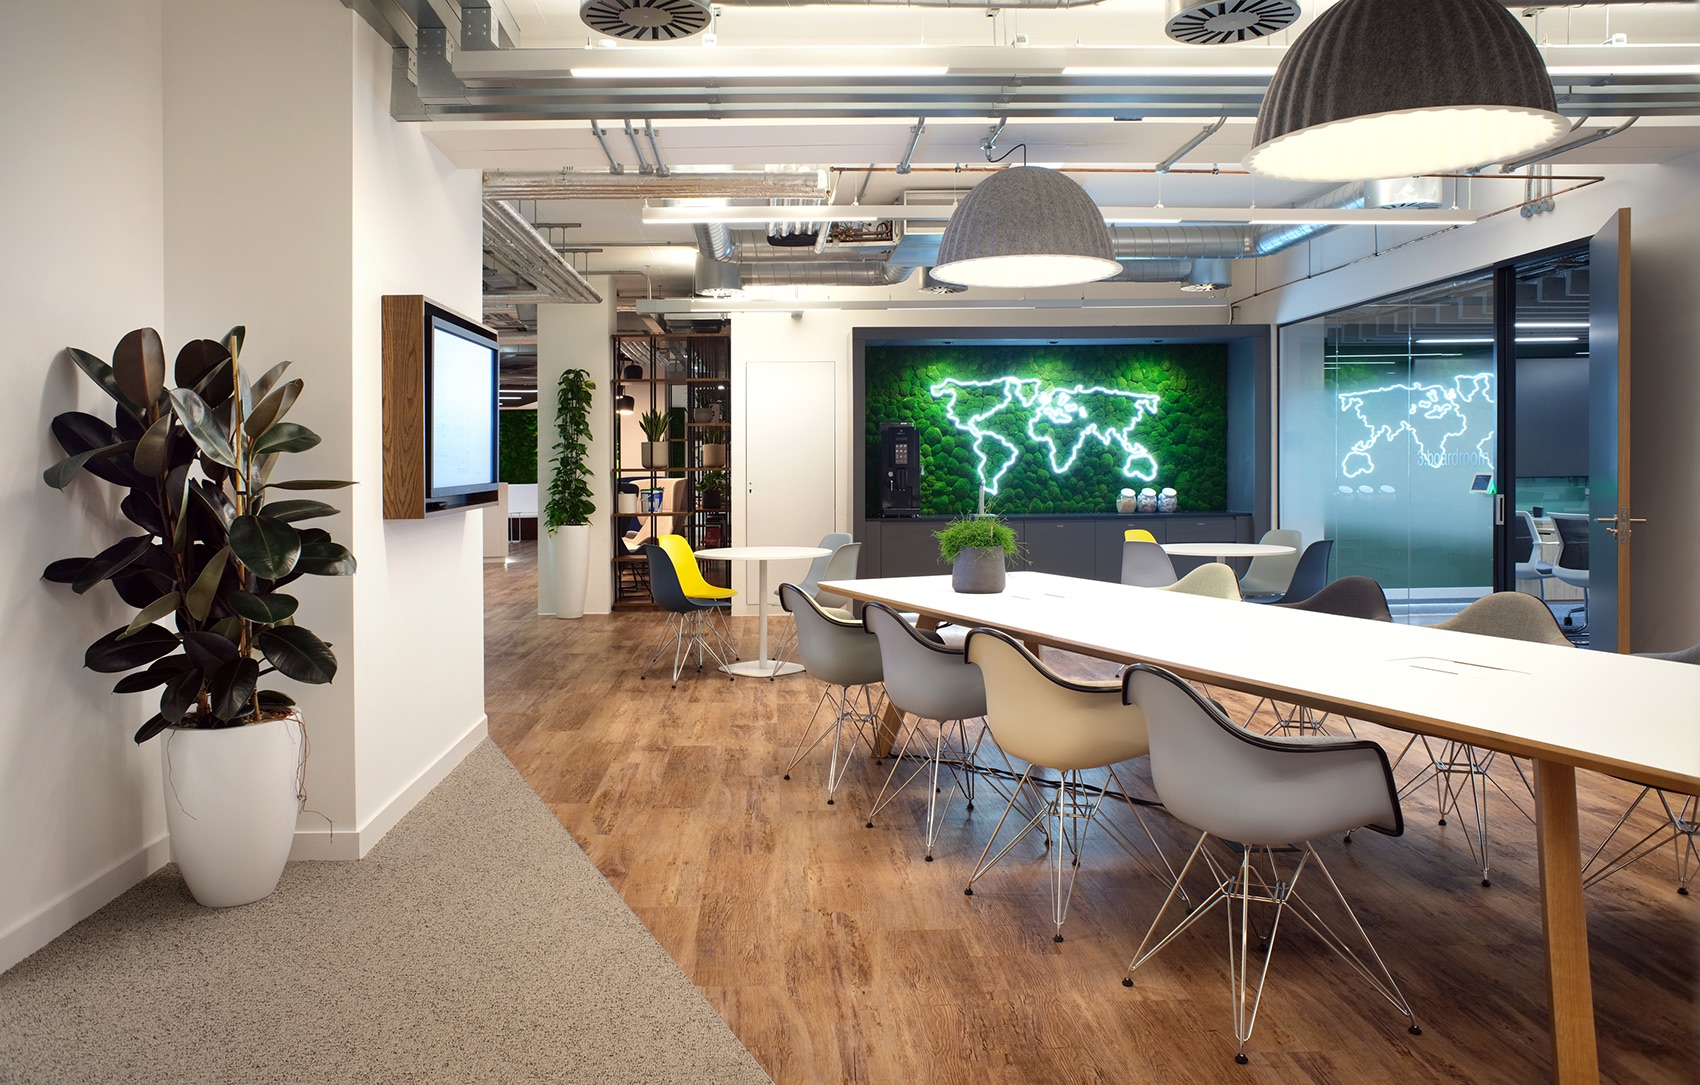 sage-publishing-london-office-9